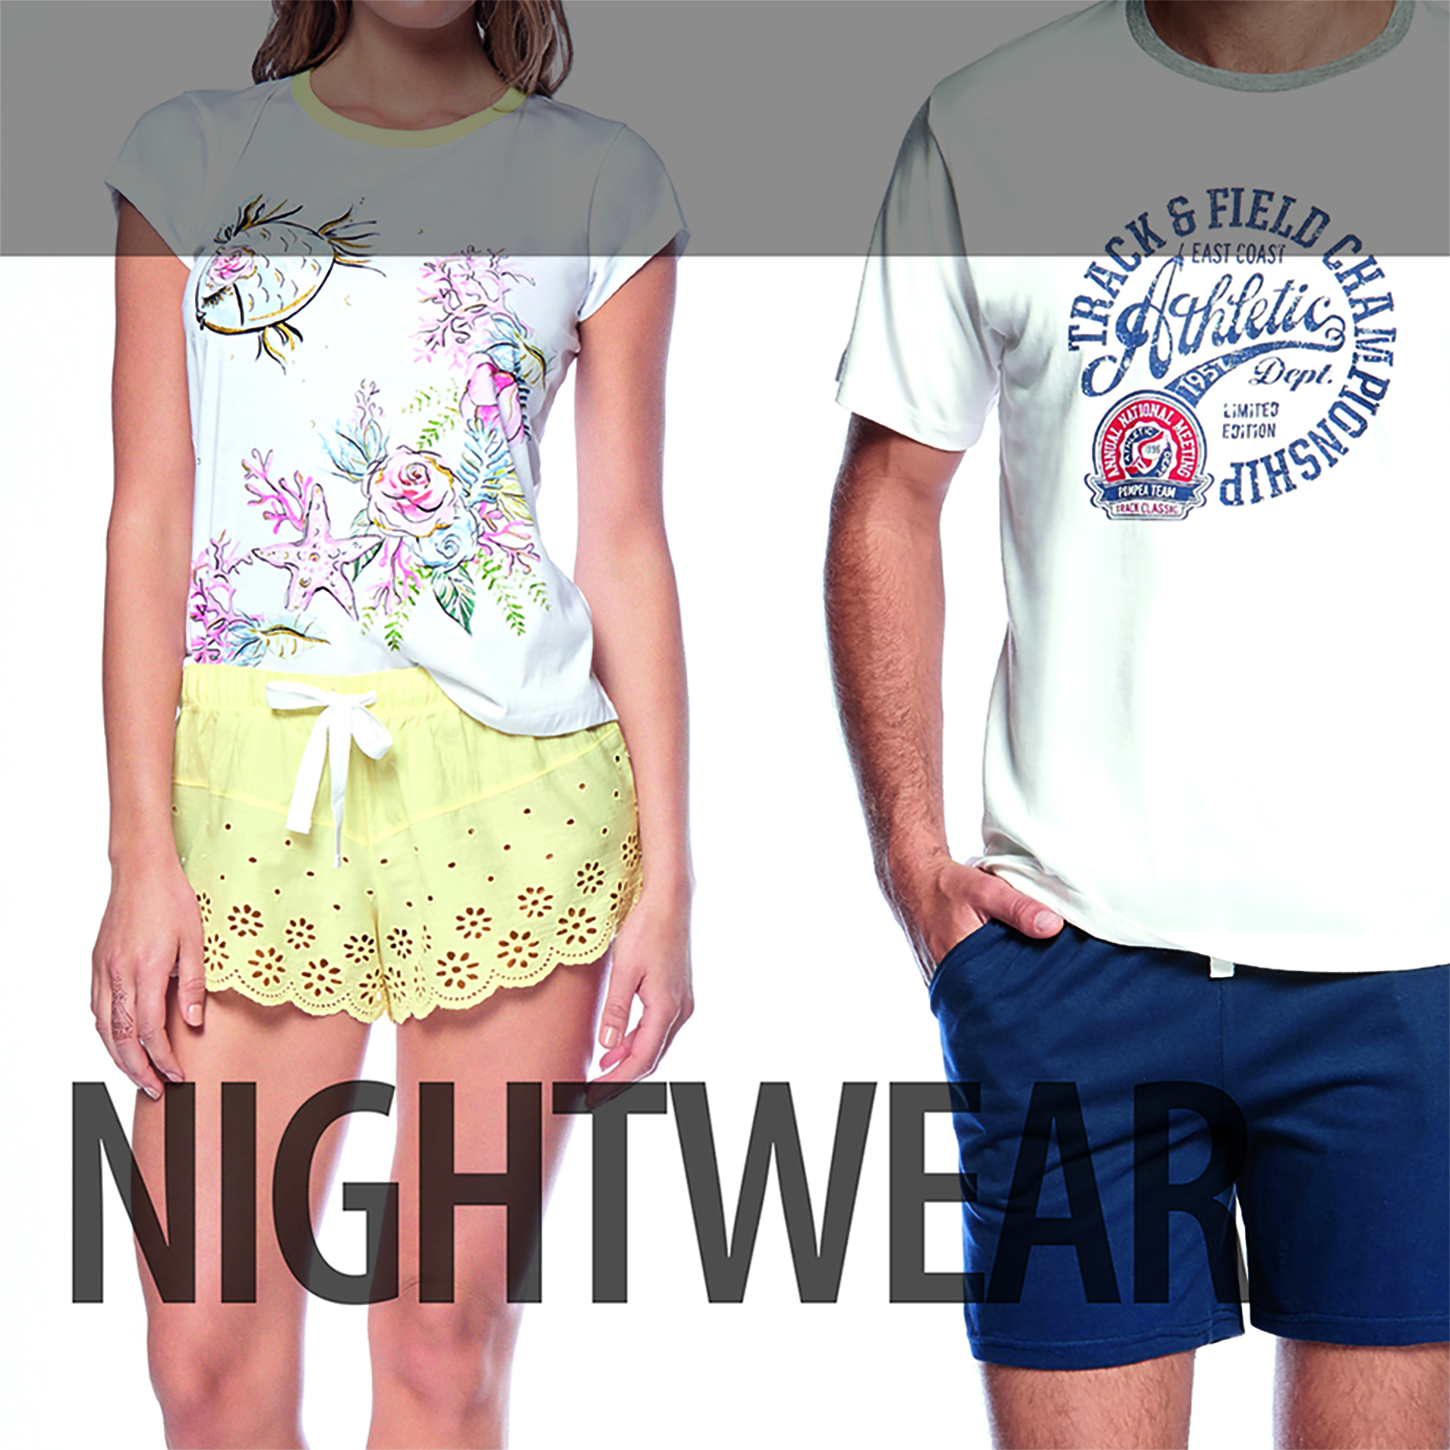 Check it out all the nightwear collection